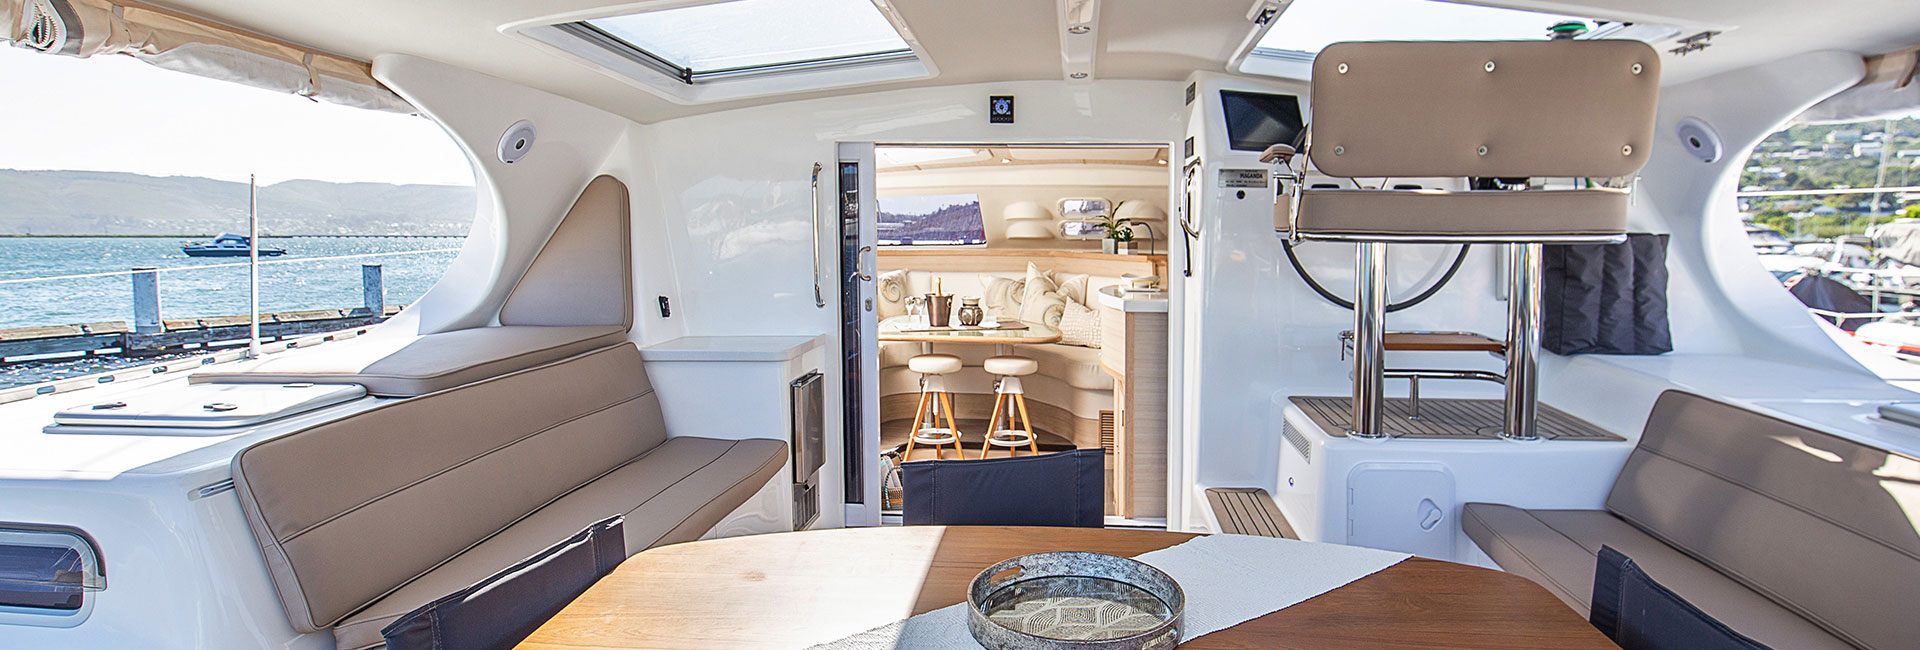 Outside area on yacht